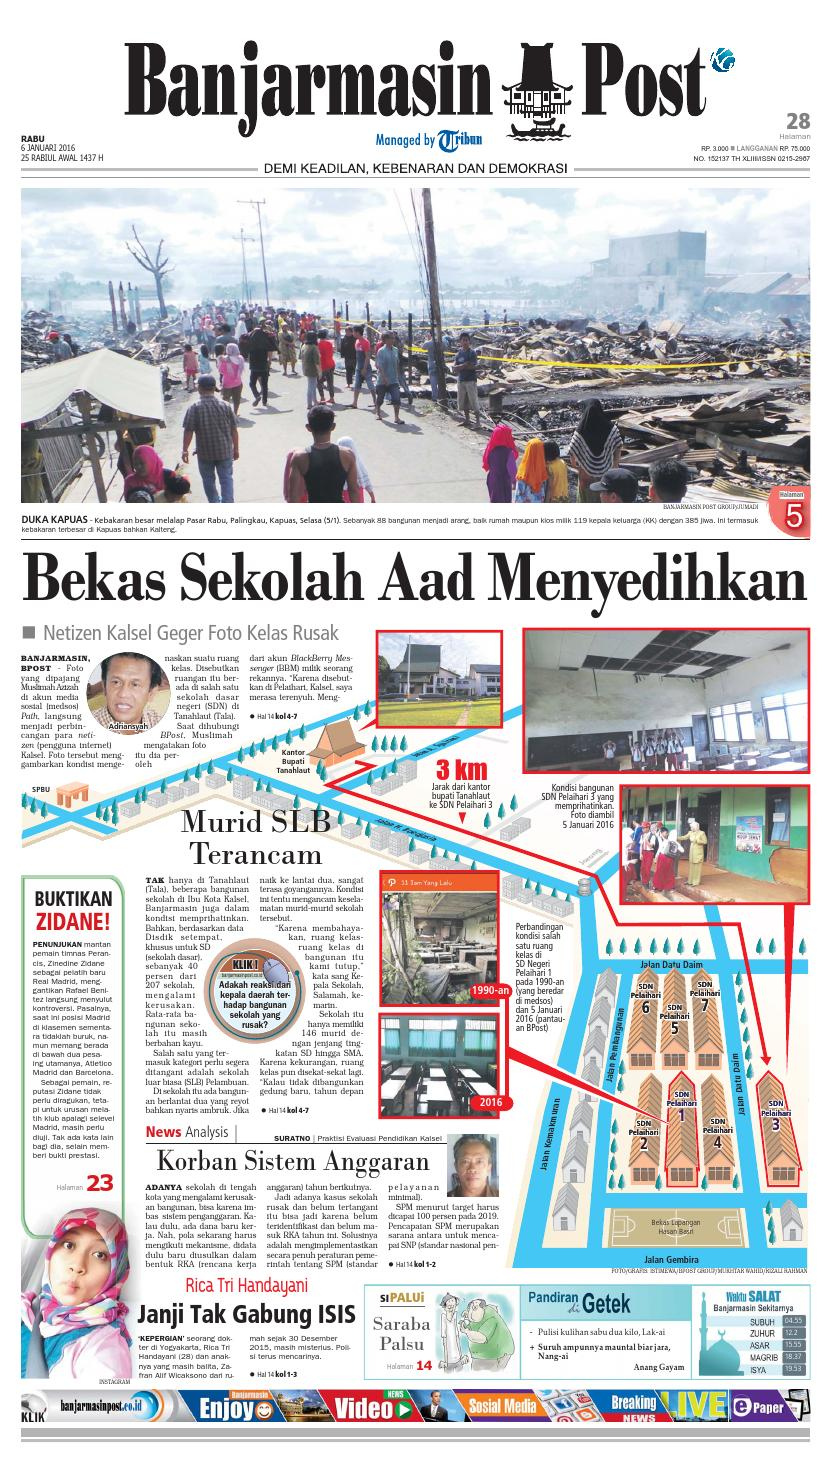 Banjarmasin Post Rabu 6 Januari 2016 By Issuu Tcash Vaganza 35 Sarung Orange Instan Anak Usia 1 7 Tahun